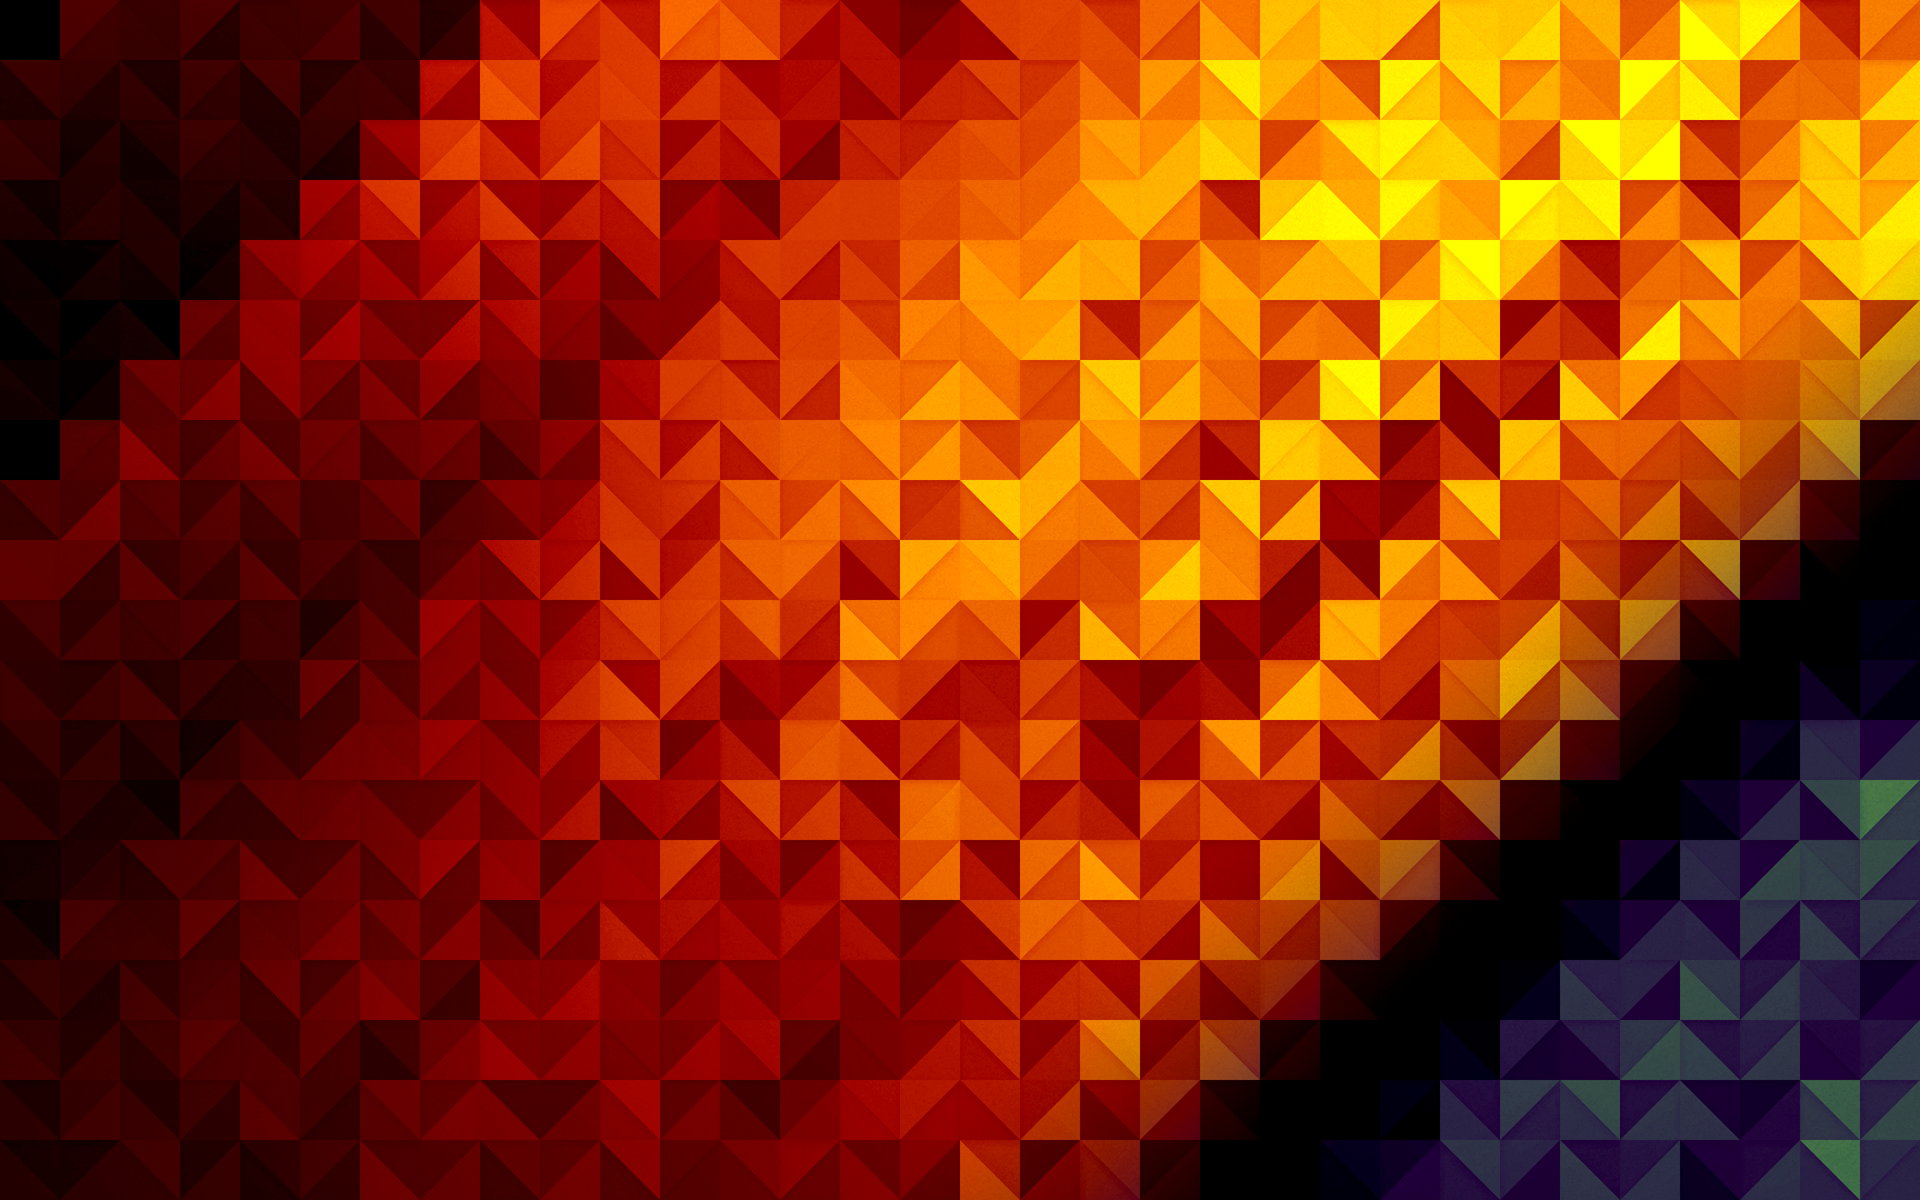 3d abstract wallpaper hd